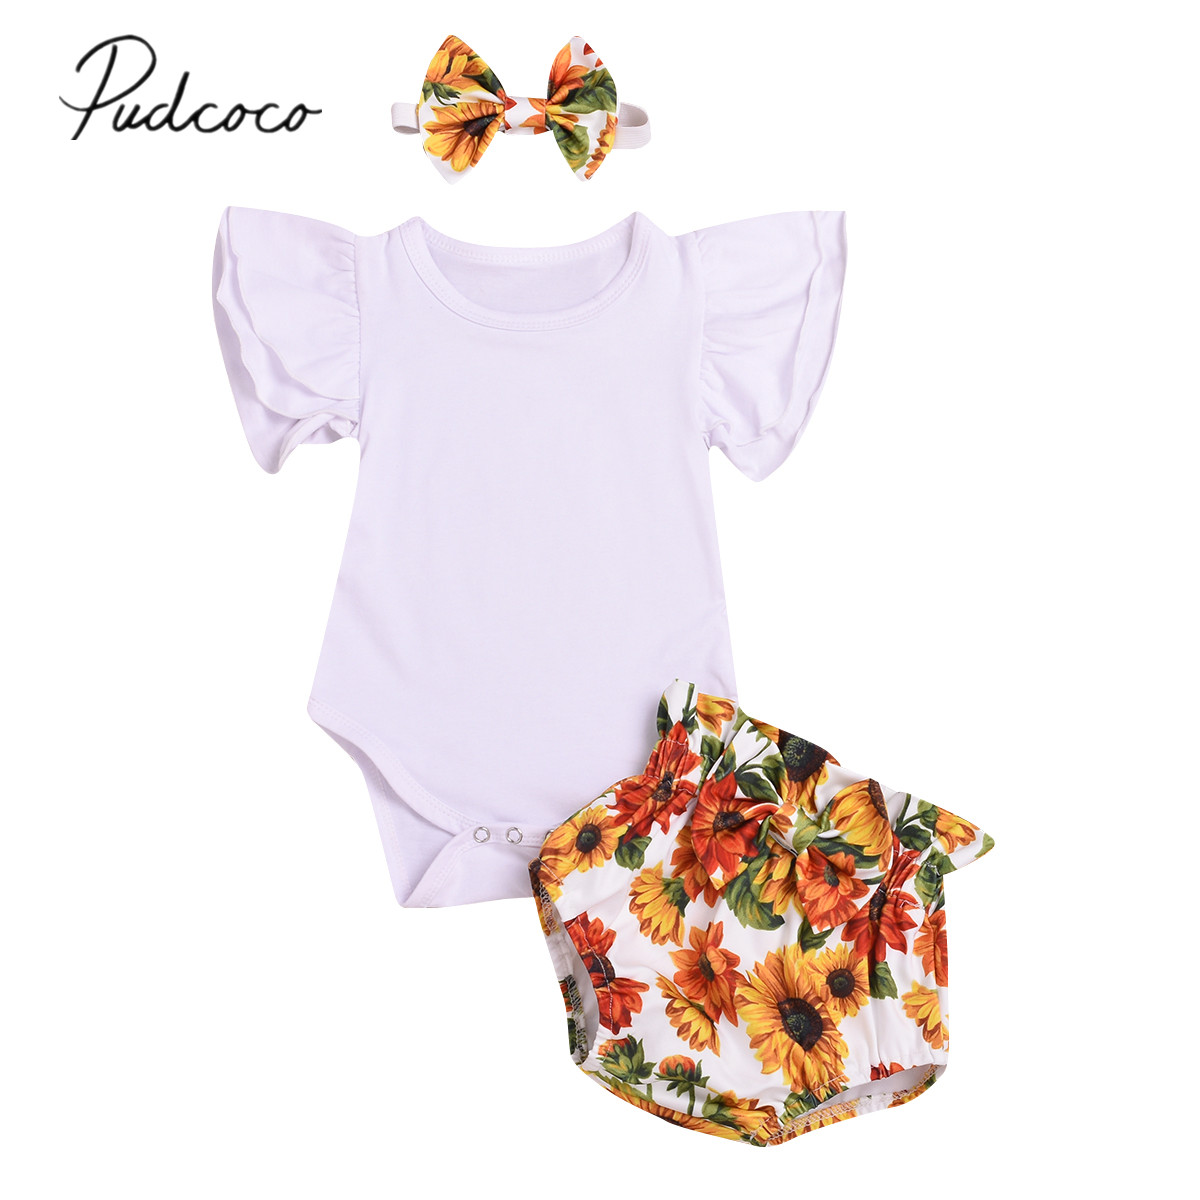 257e3acc4f 2019 Baby Summer Clothing Baby Kids Girls Outfits Toddler Flare Sleeve Top  Romper Sunflower Pants Shorts